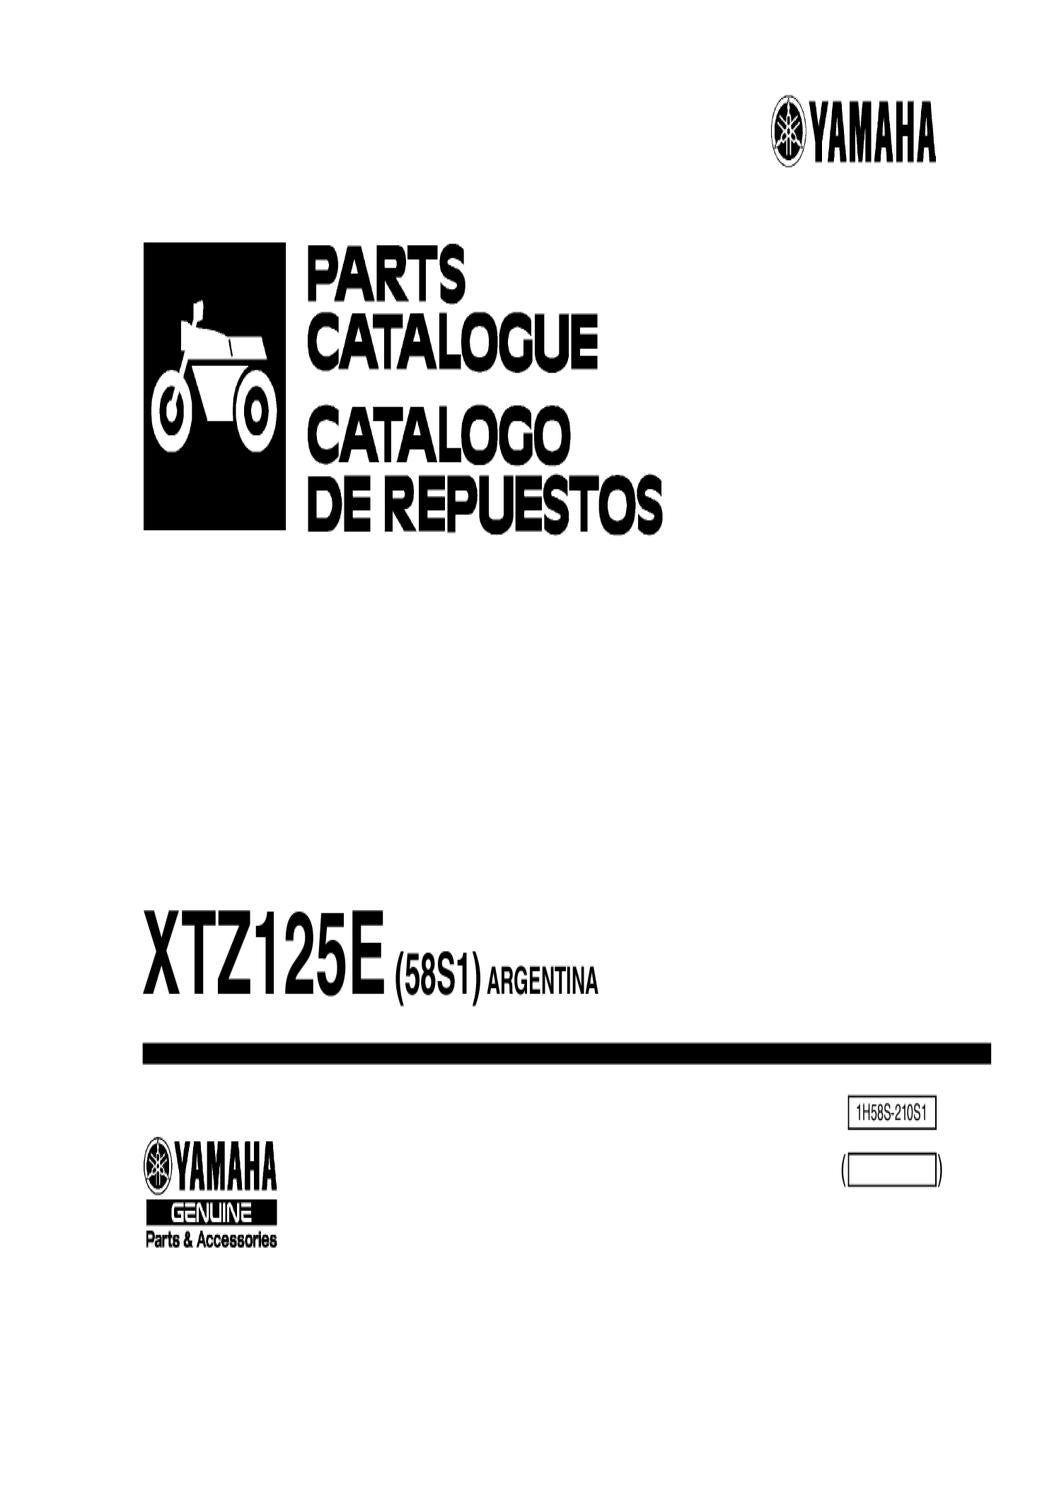 Manual despiece Yamaha XTZ 125 2010 by Fernando Laborda